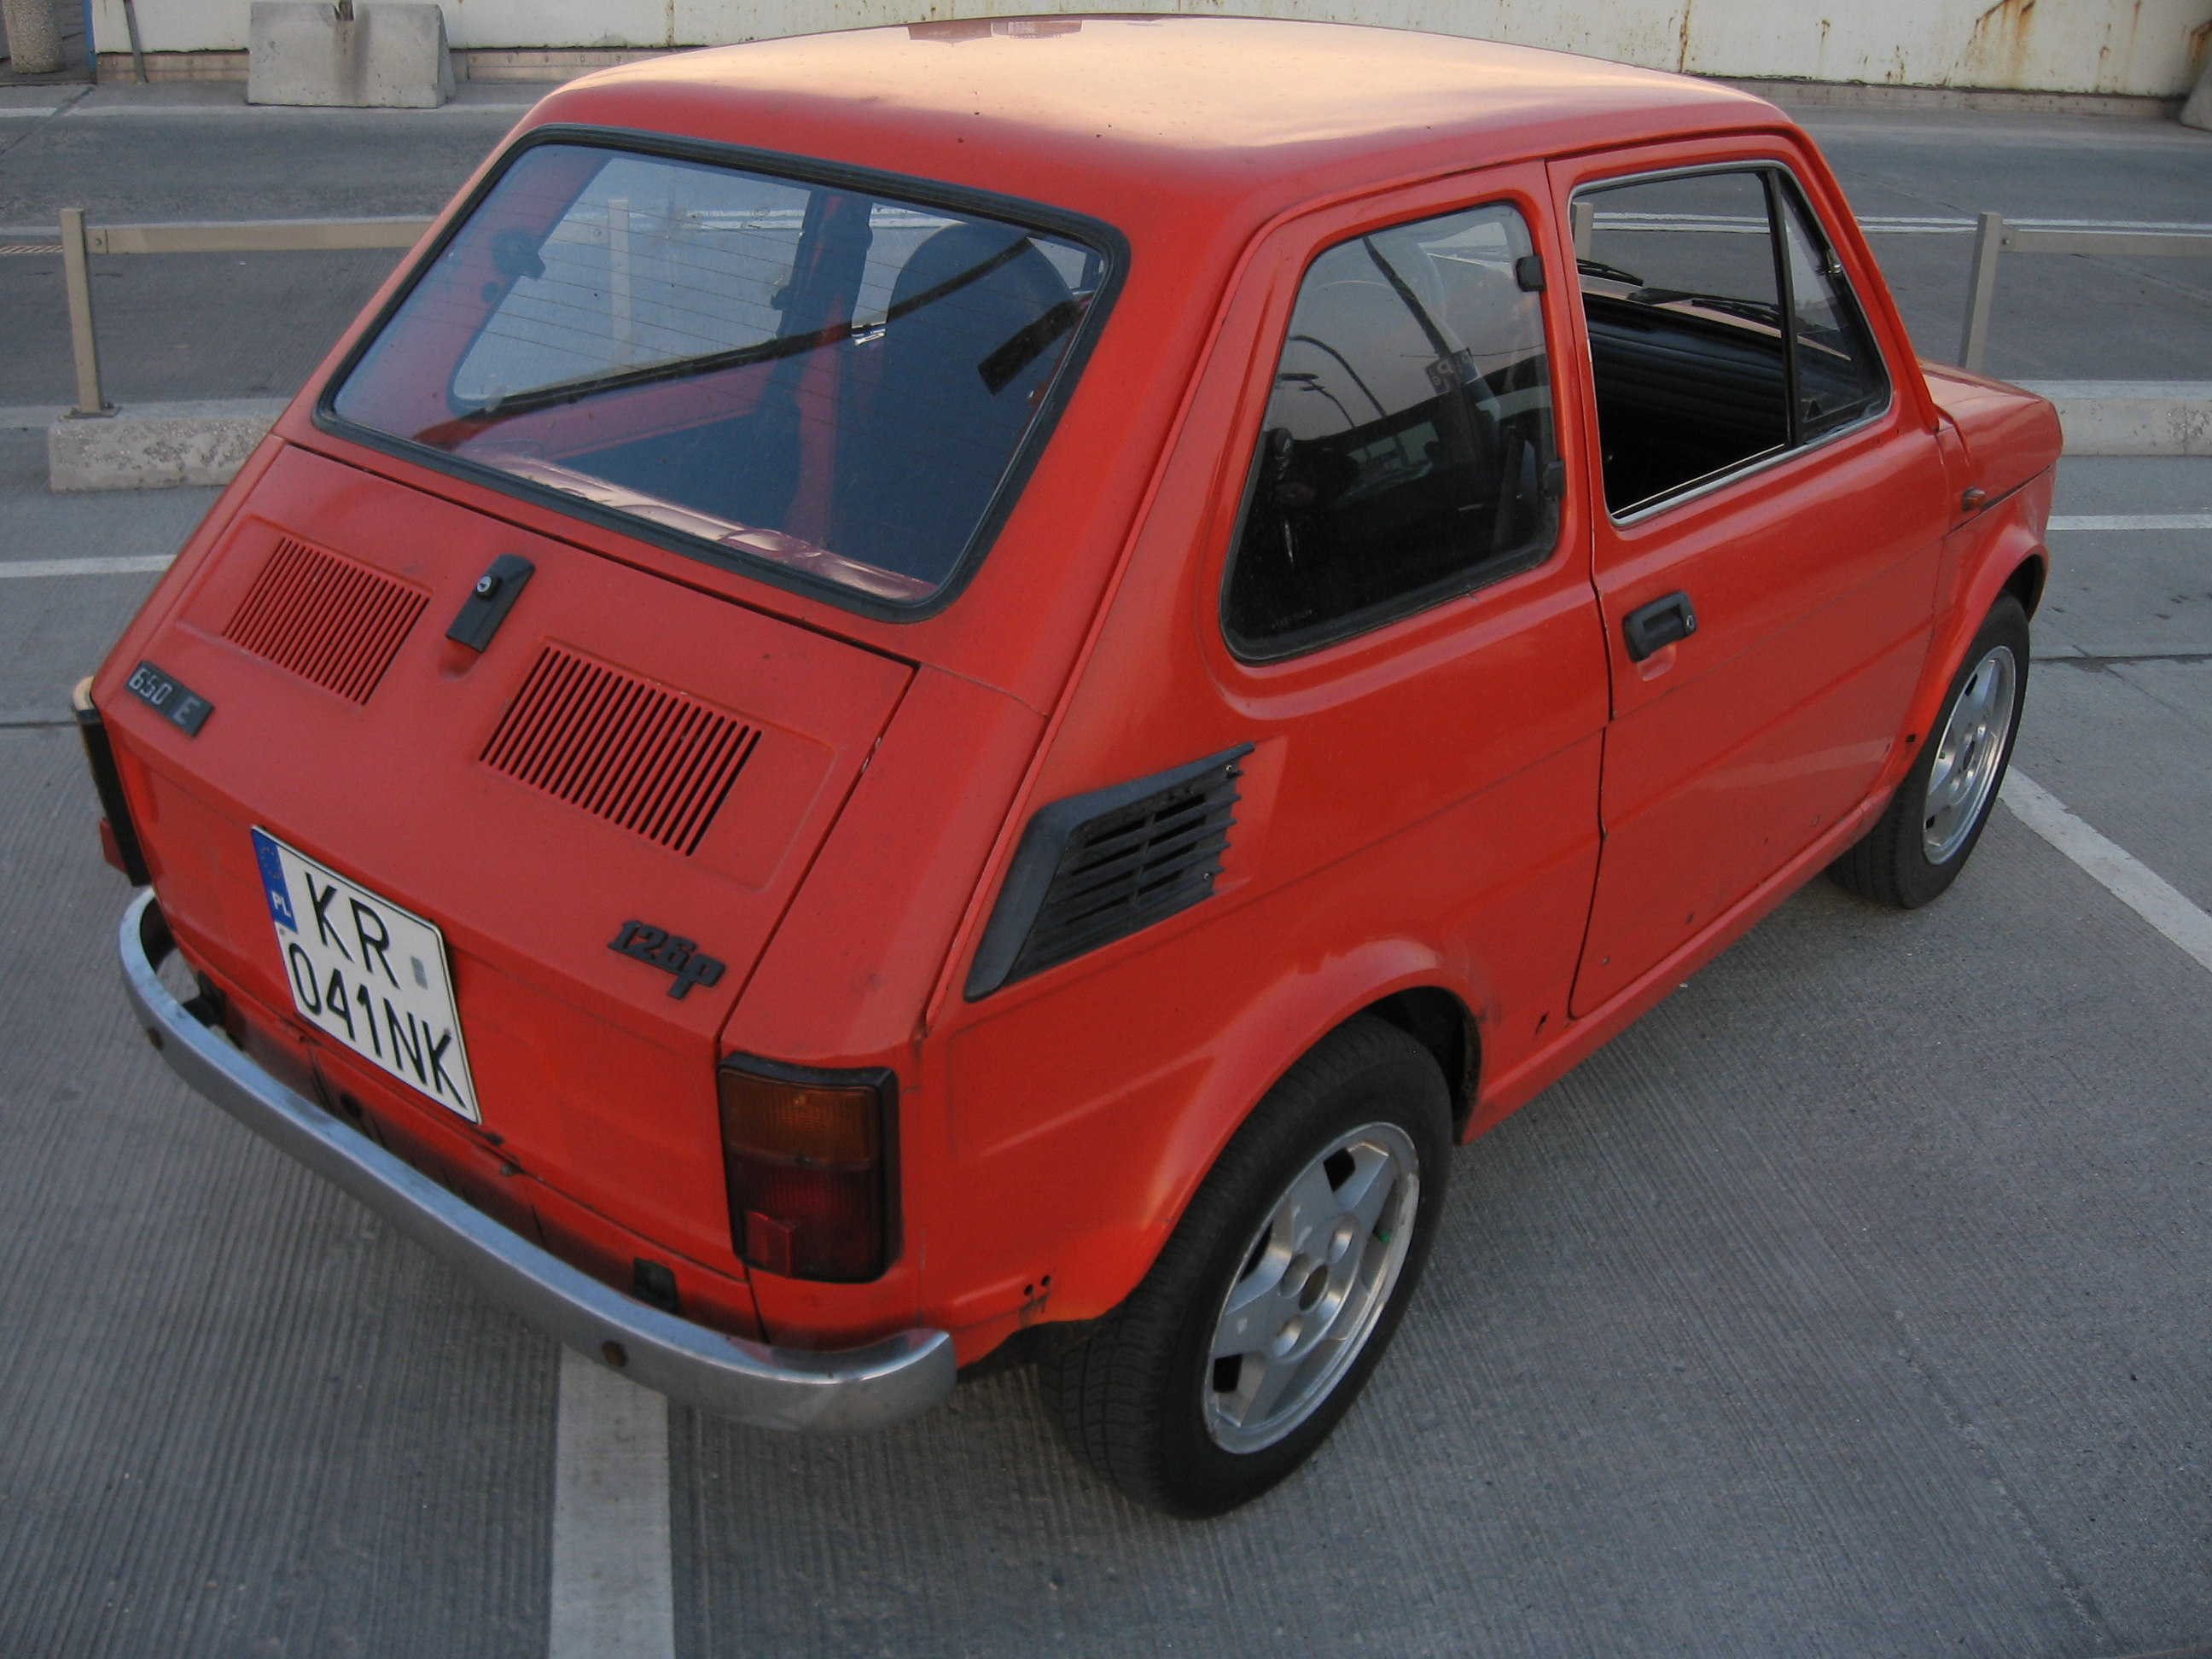 file polski fiat 126p fl 650e on a parking lot of the krakow central station 3 jpg wikimedia commons wikimedia commons